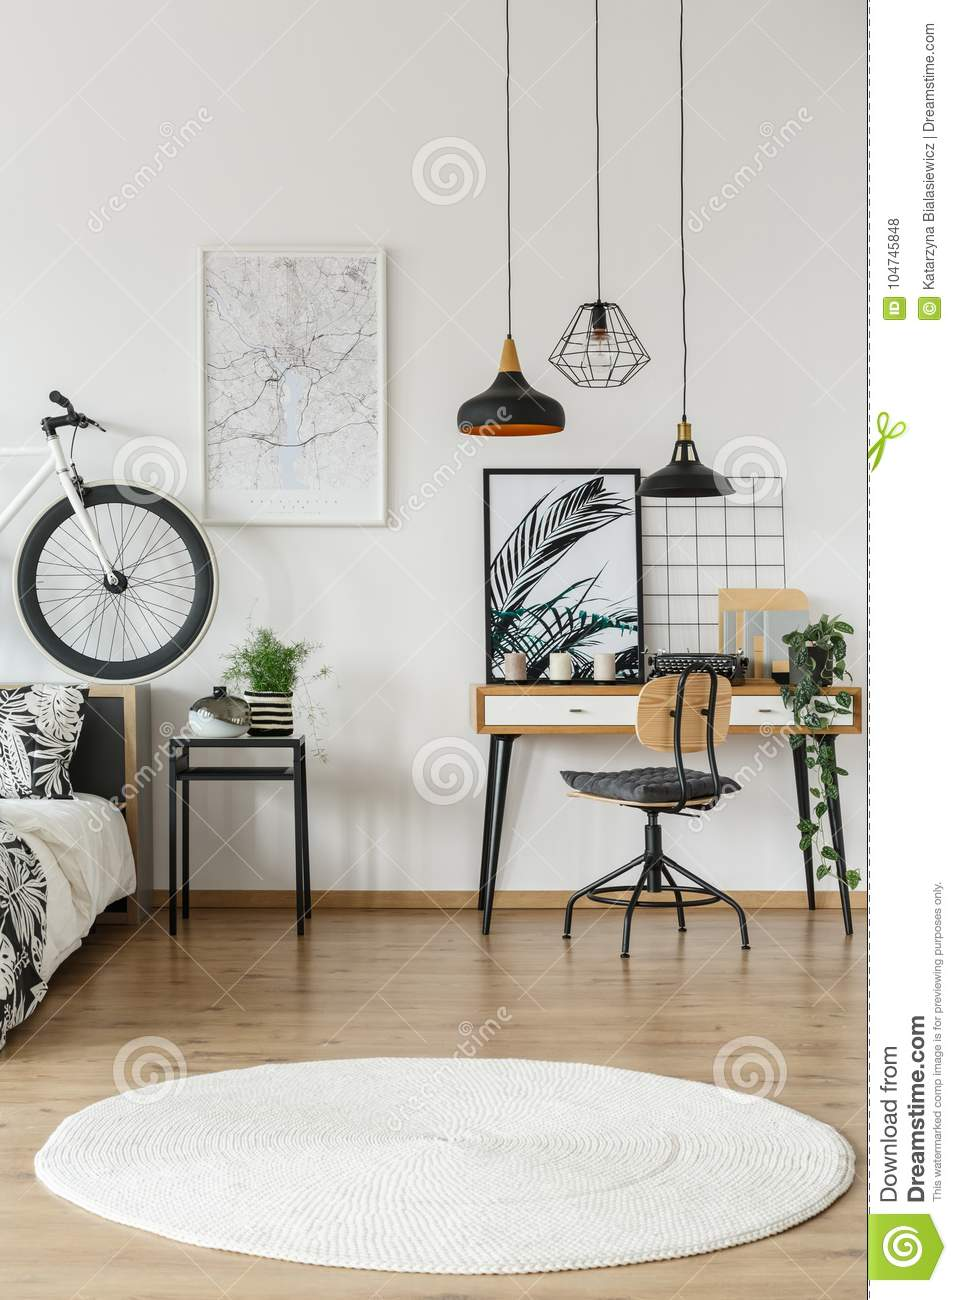 White Carpet In Teenager`s Room Stock Photo - Image of house ...